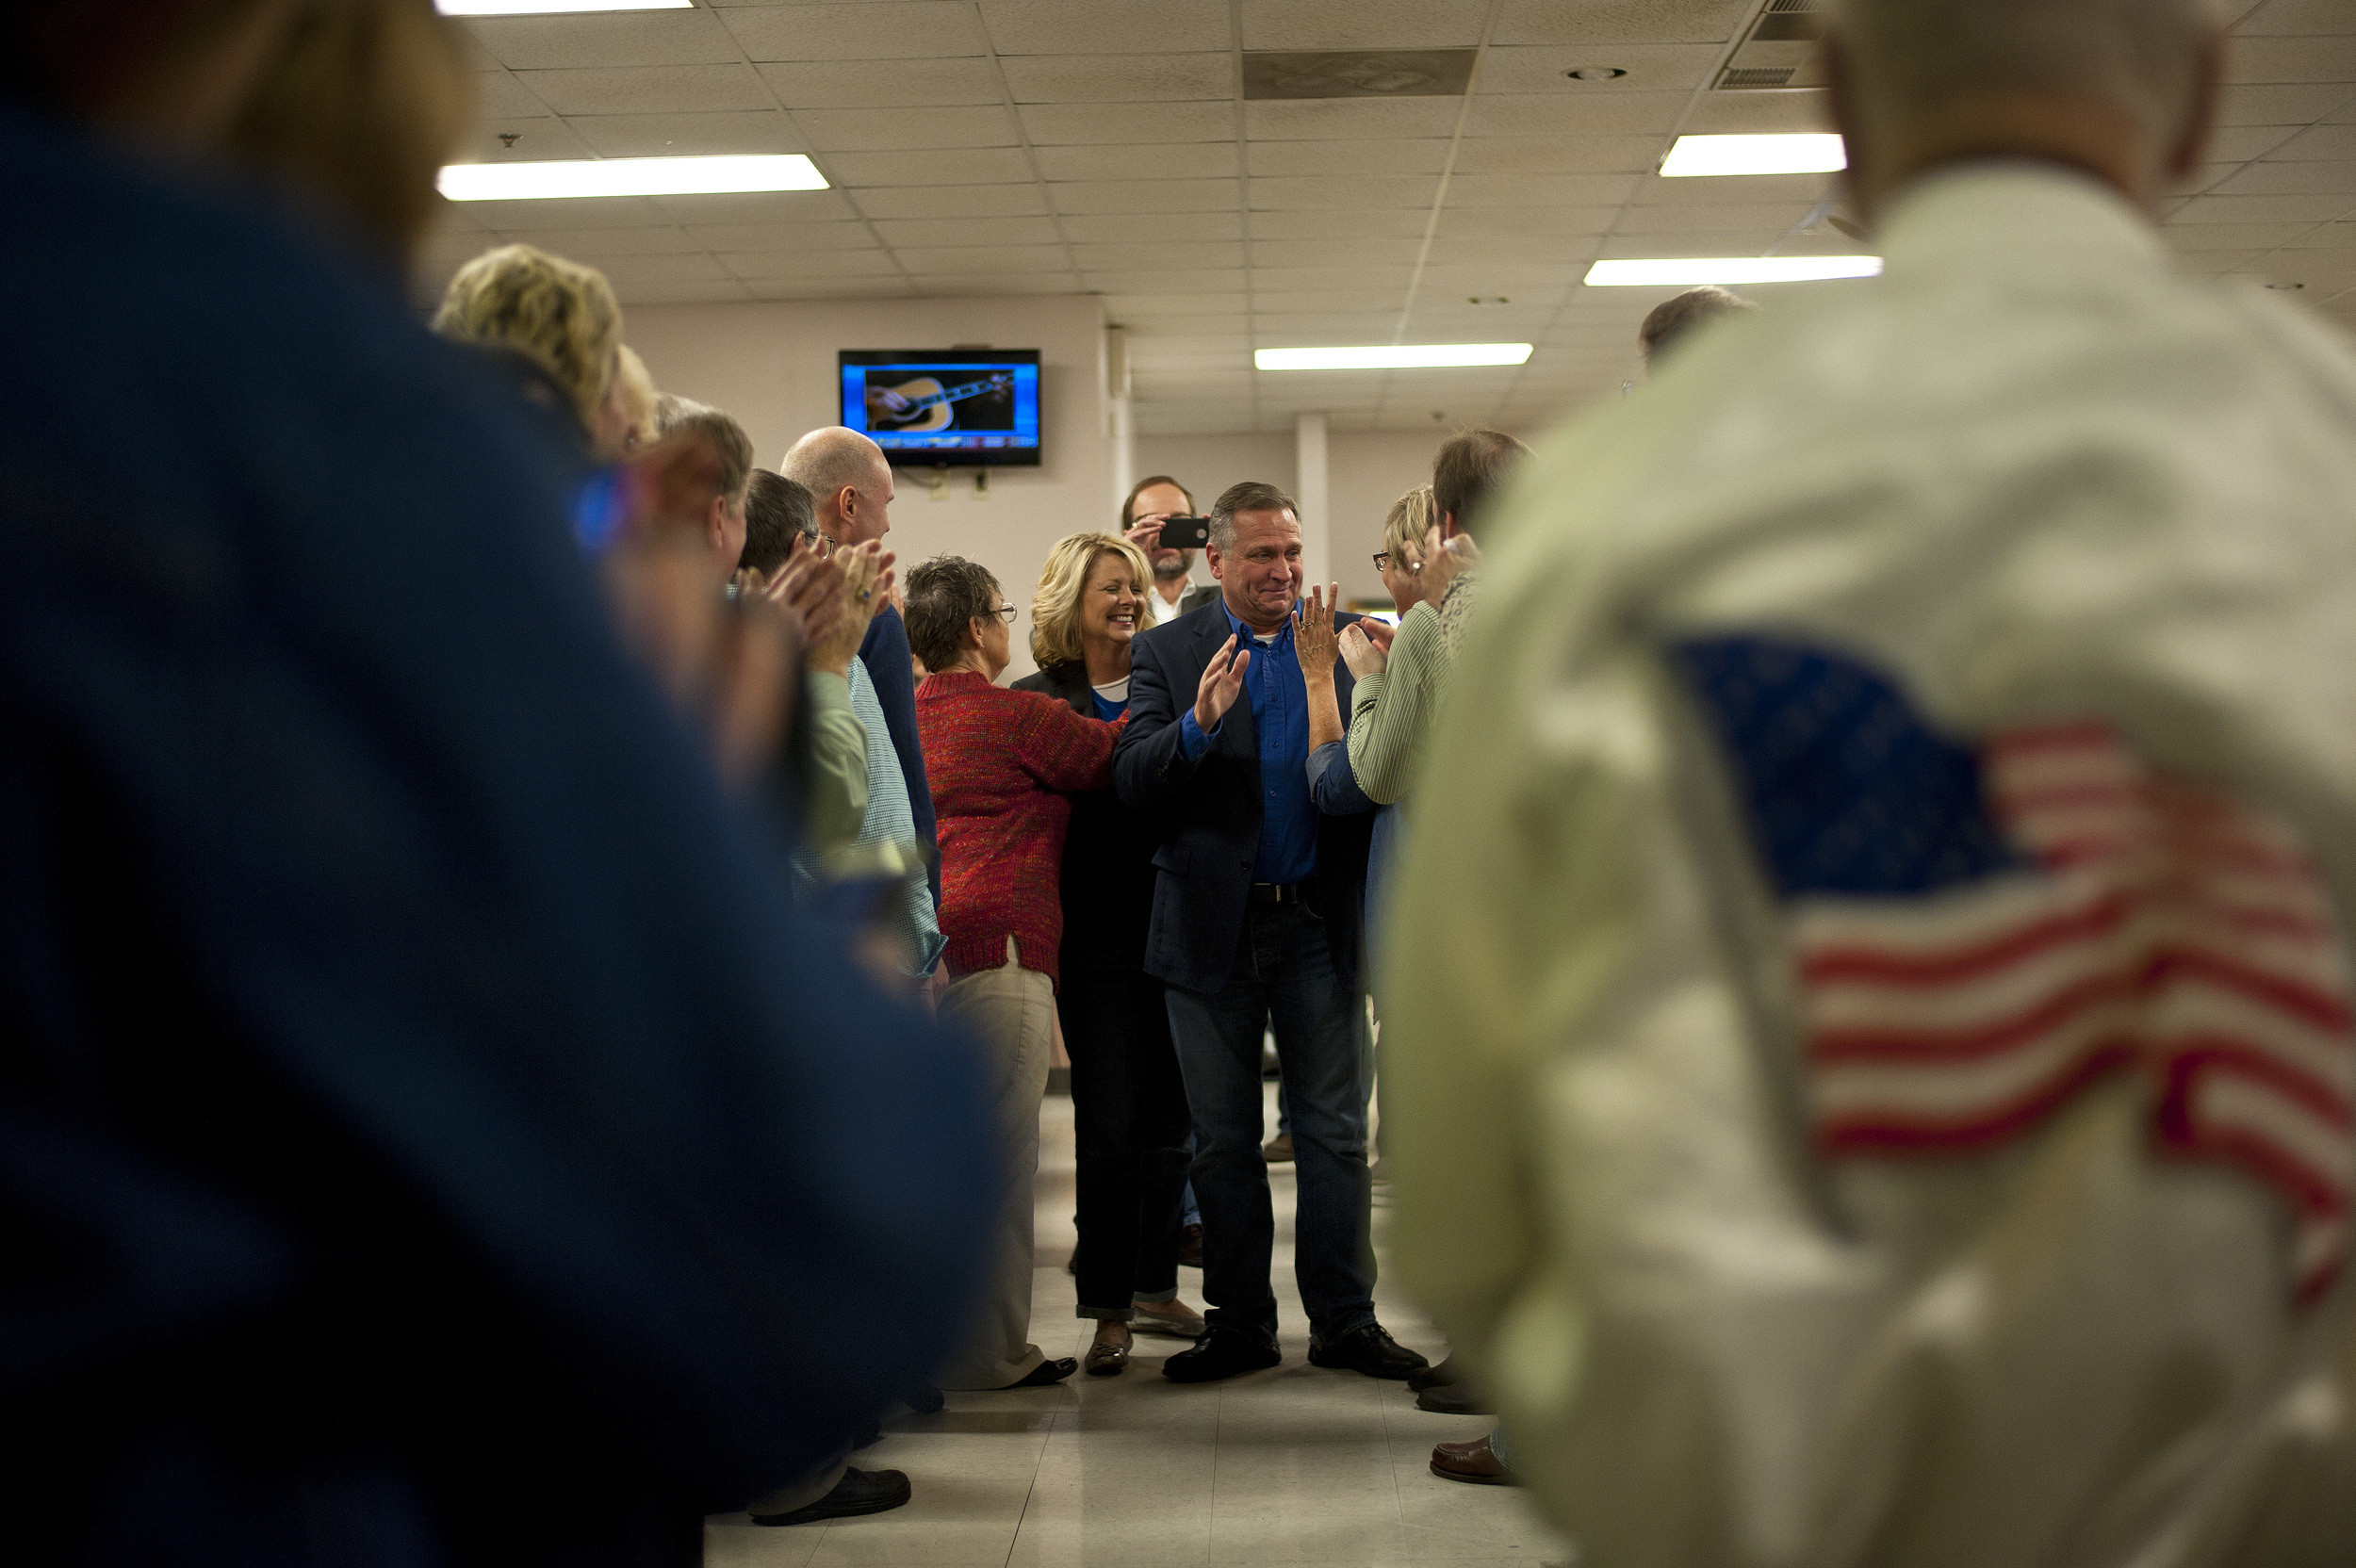 Mike Bost (R-Murphysboro) walks through the aisle of supporters after winning the Illinois 12th Congressional District against Bill Enyart (D-Belleville). Bost is the first Republican to represent the Illinois 12th Congressional District since 1993, and is the first Republican in 70 years to serve Southern Illinois in Congress.